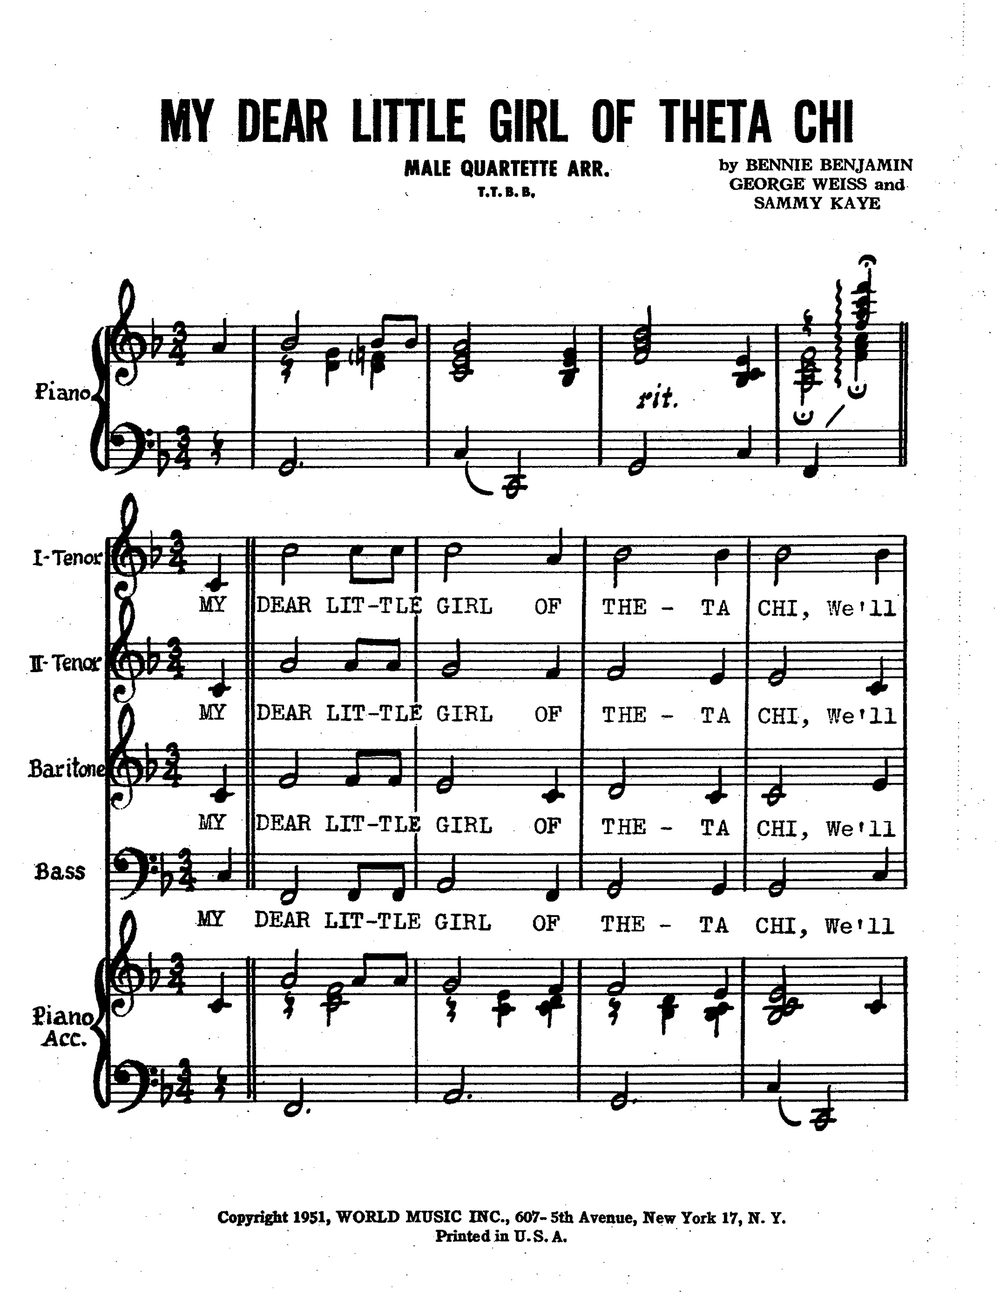 Click to Download Sheet Music